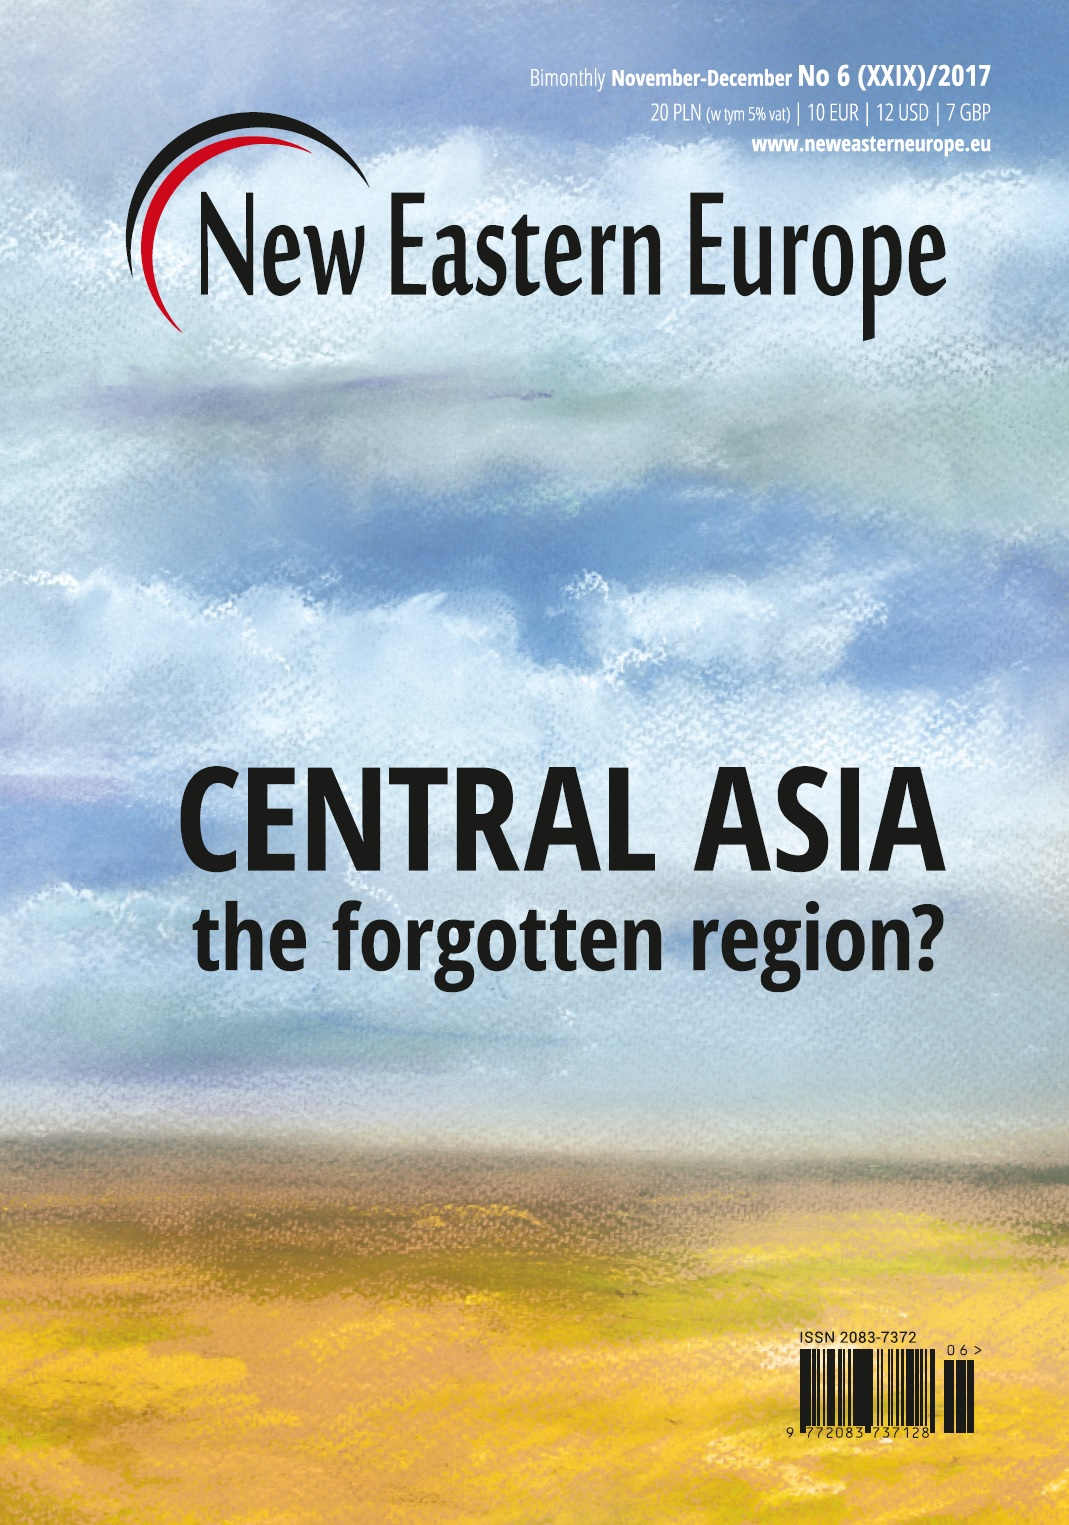 Issue 6 2017 Central Asia The Forgotten Region New Eastern Electricity Question Borne Out Of Idiocy International Skeptics Europe A Bimonthly News Magazine Dedicated To And European Affairs